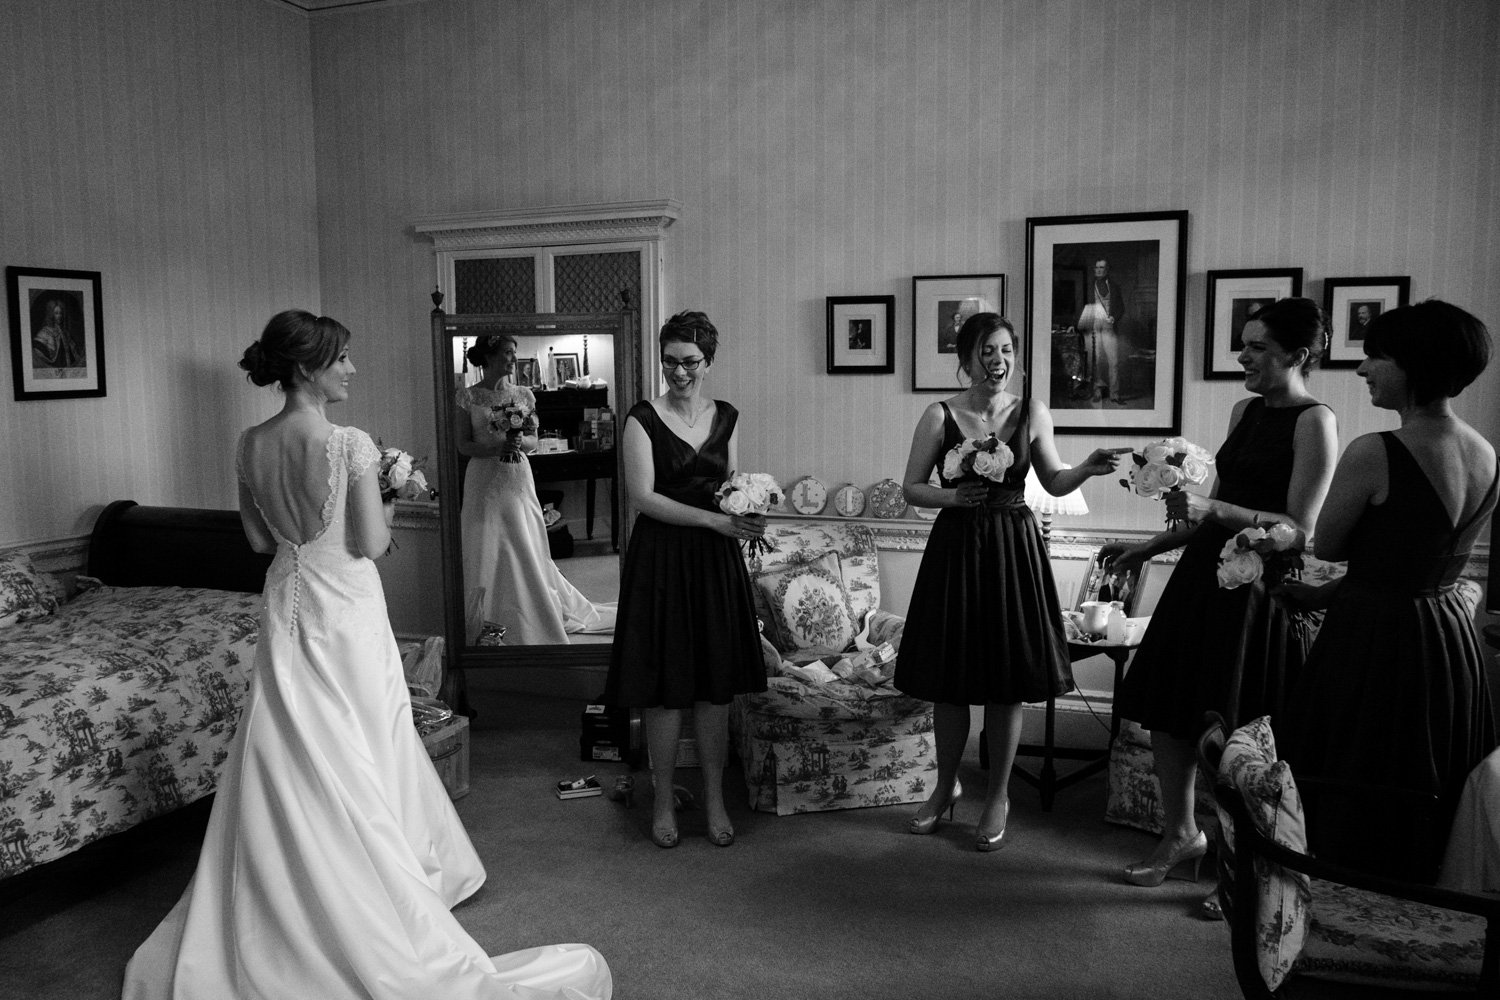 Girls getting ready in the bridal suite